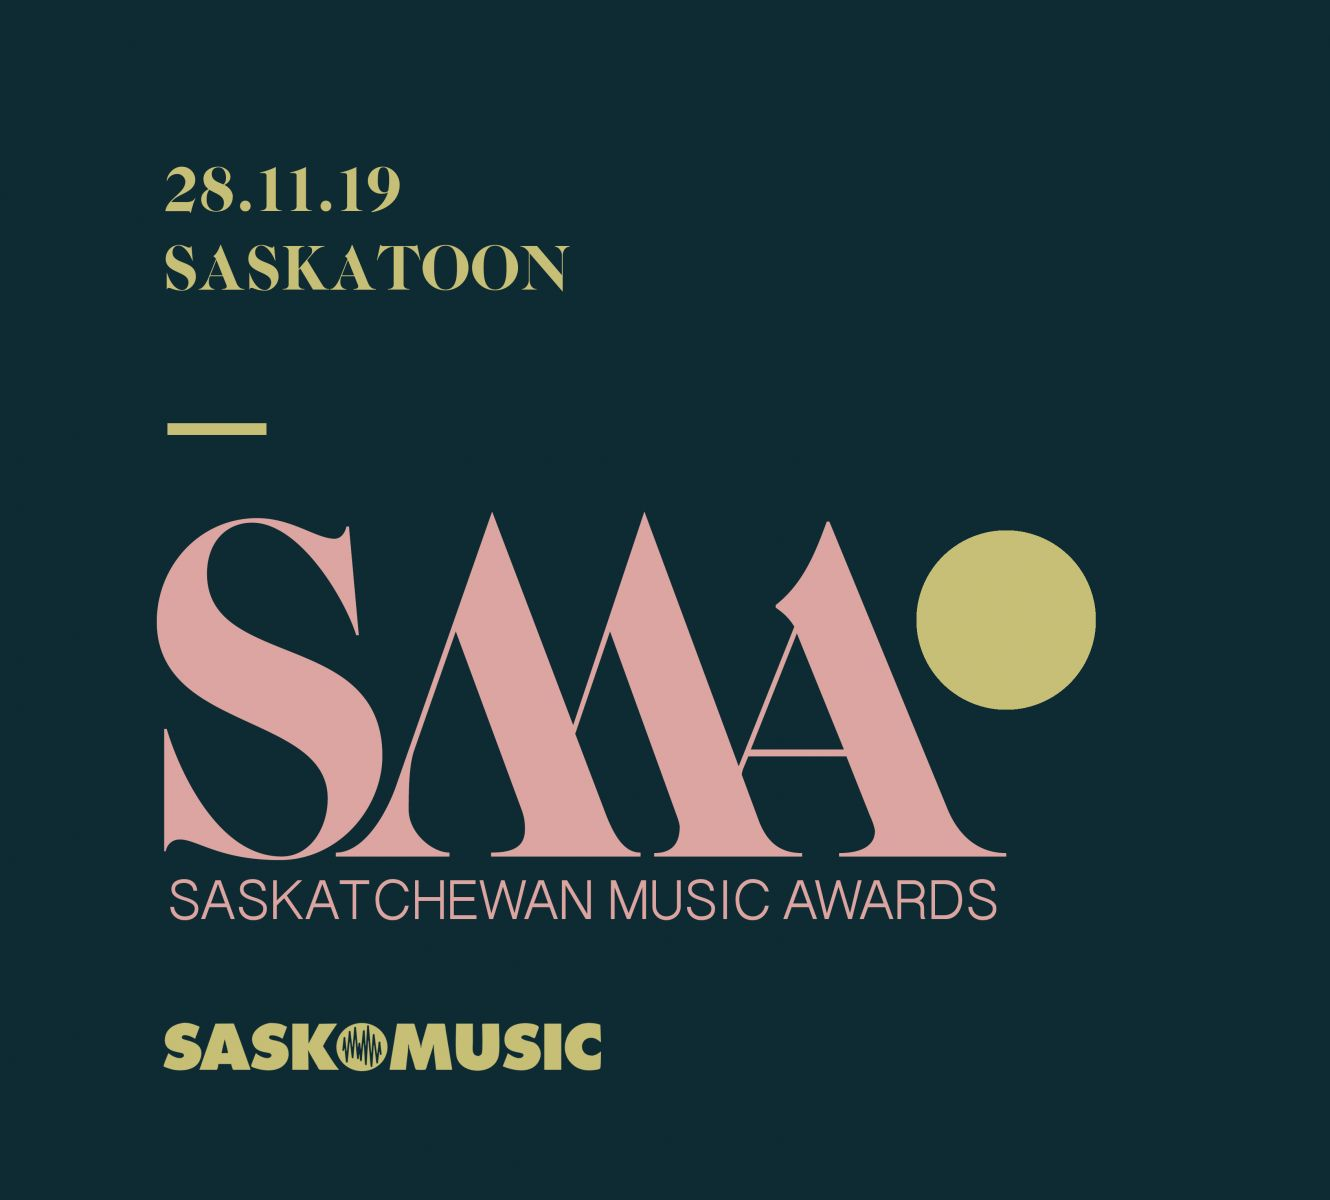 Sask Music Awards